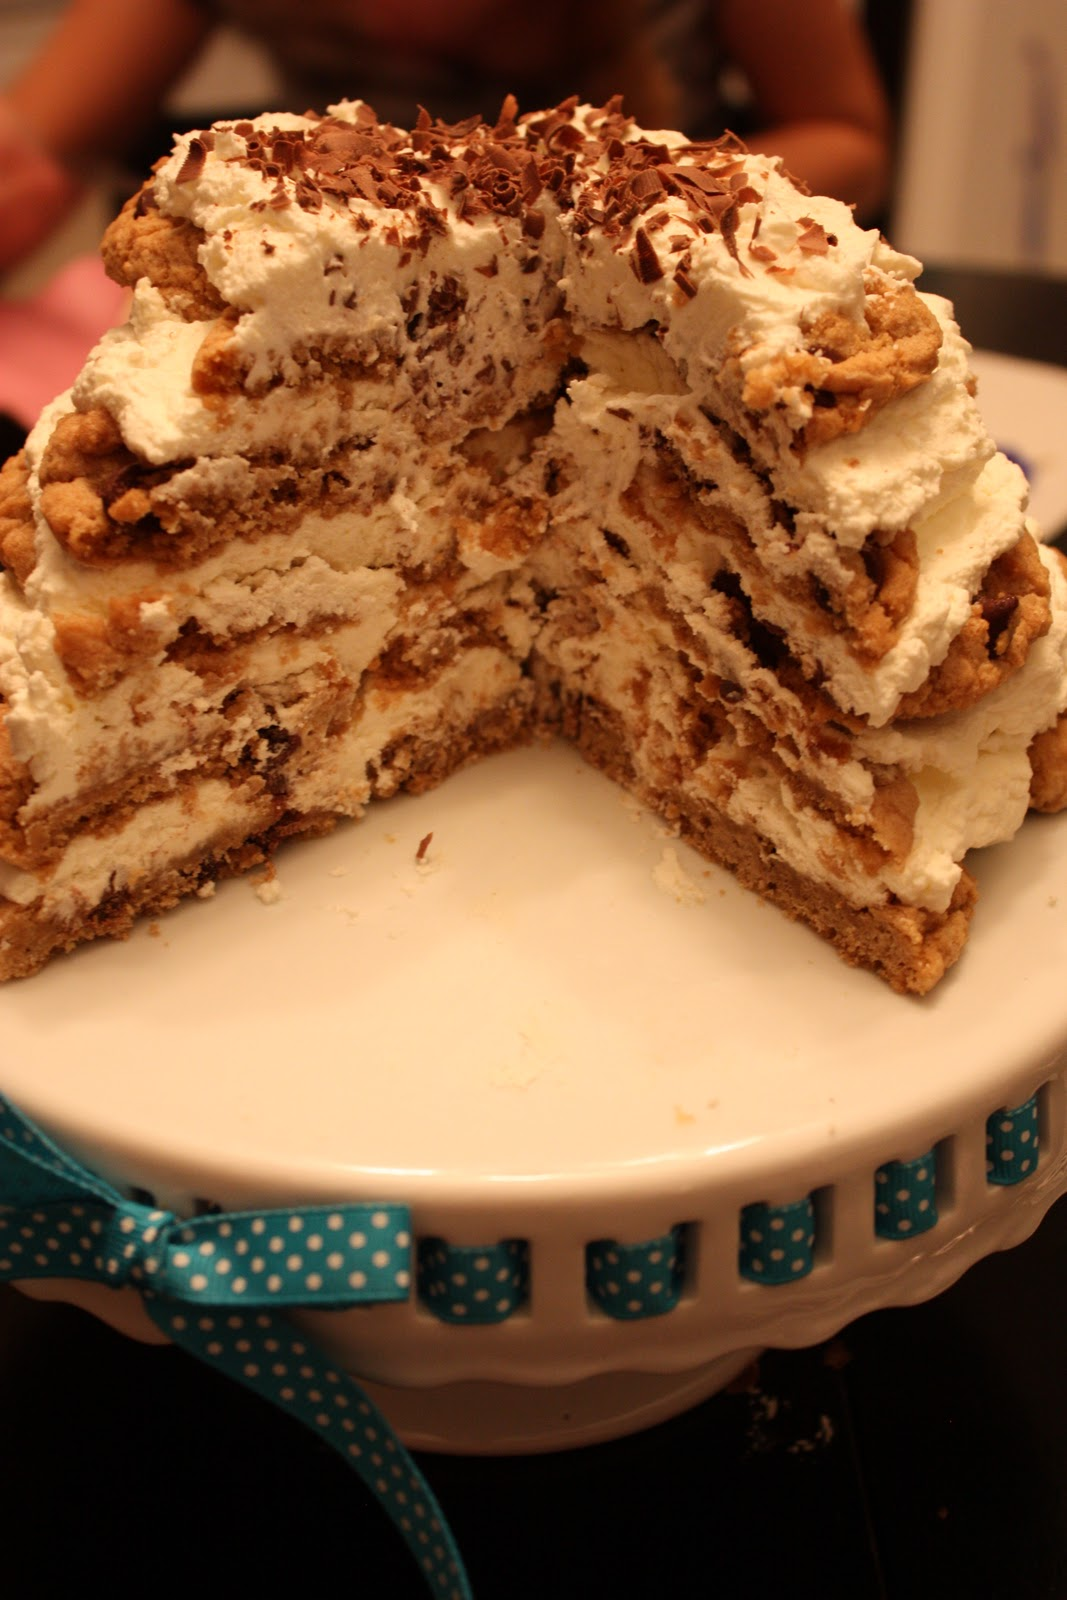 Christie's Cakes: Chocolate Chip Cookie Icebox Cake